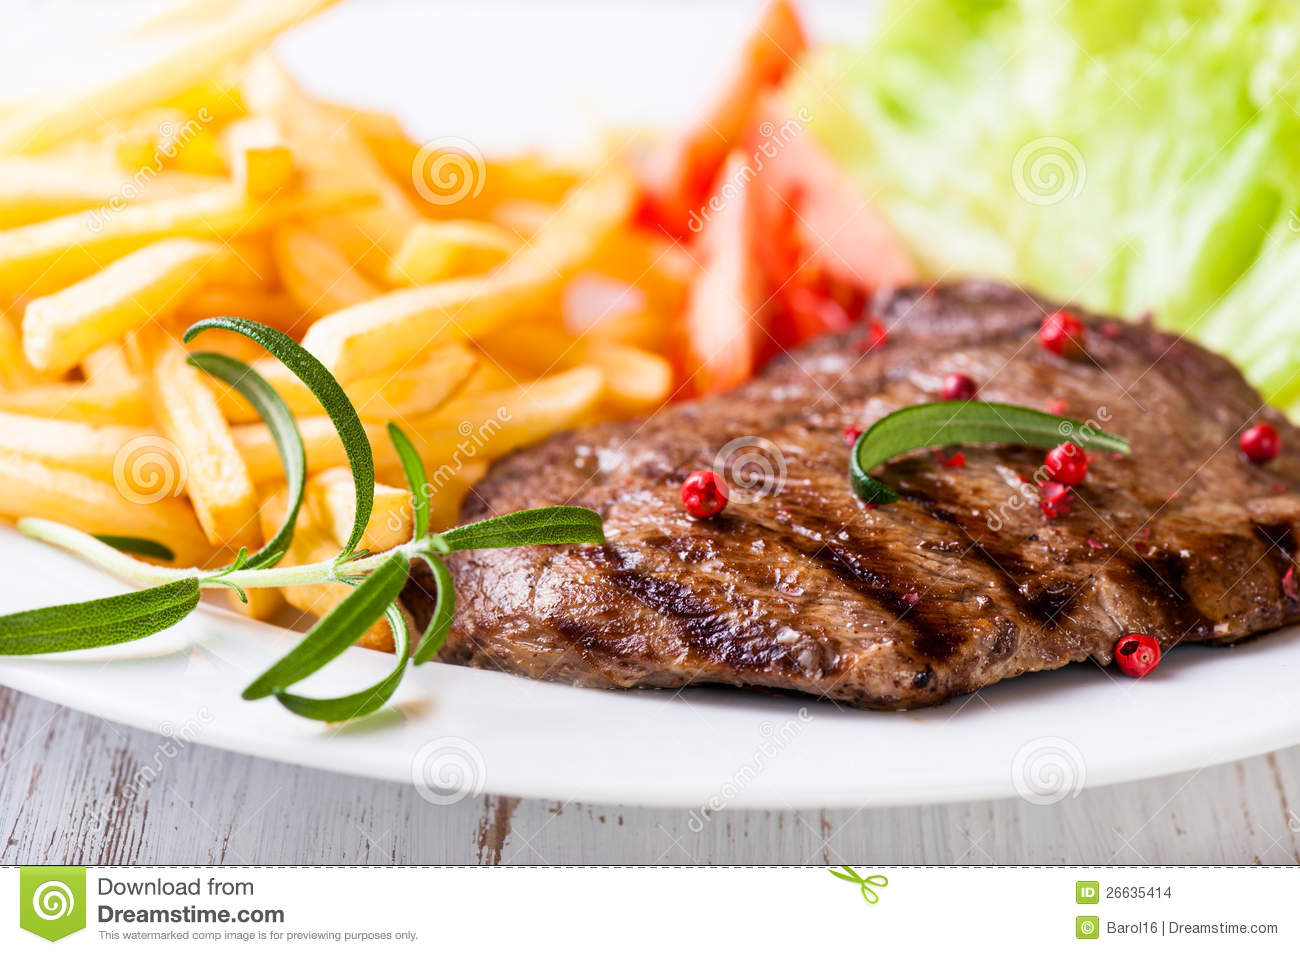 Grilled beef steak with french fries